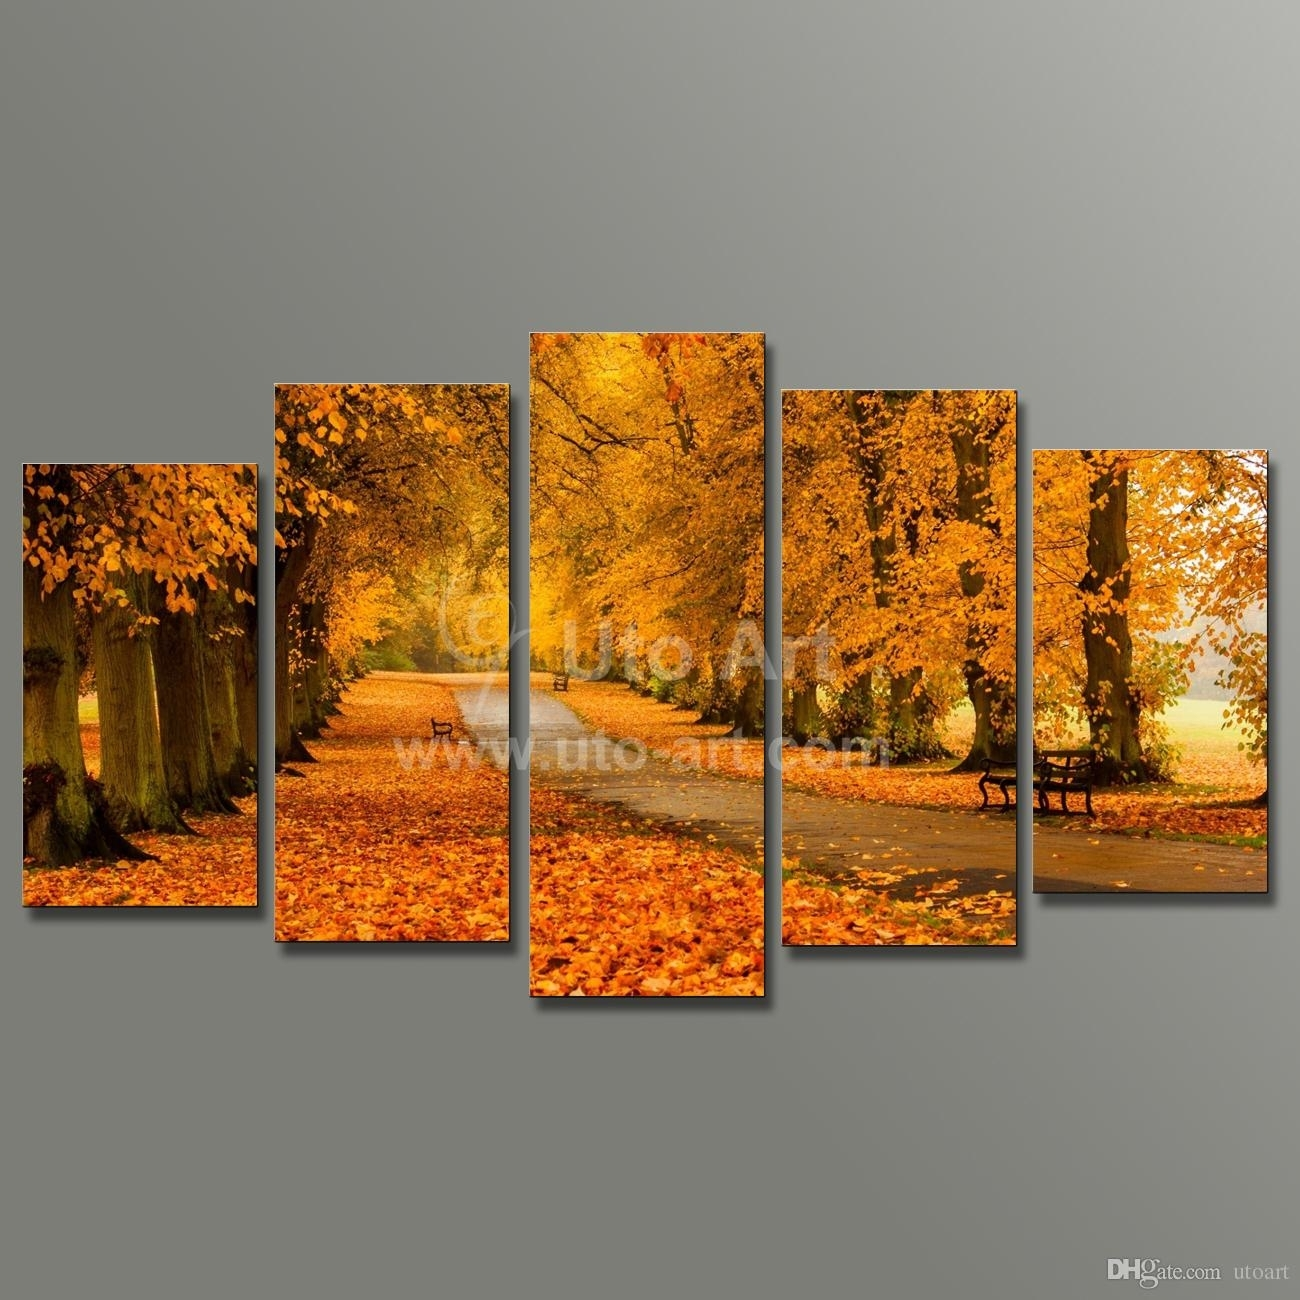 Best Modern Modular Paintings On Canvas 5 Panel Wall Art Painting Of With Regard To Recent Wall Art Canvas (View 6 of 15)